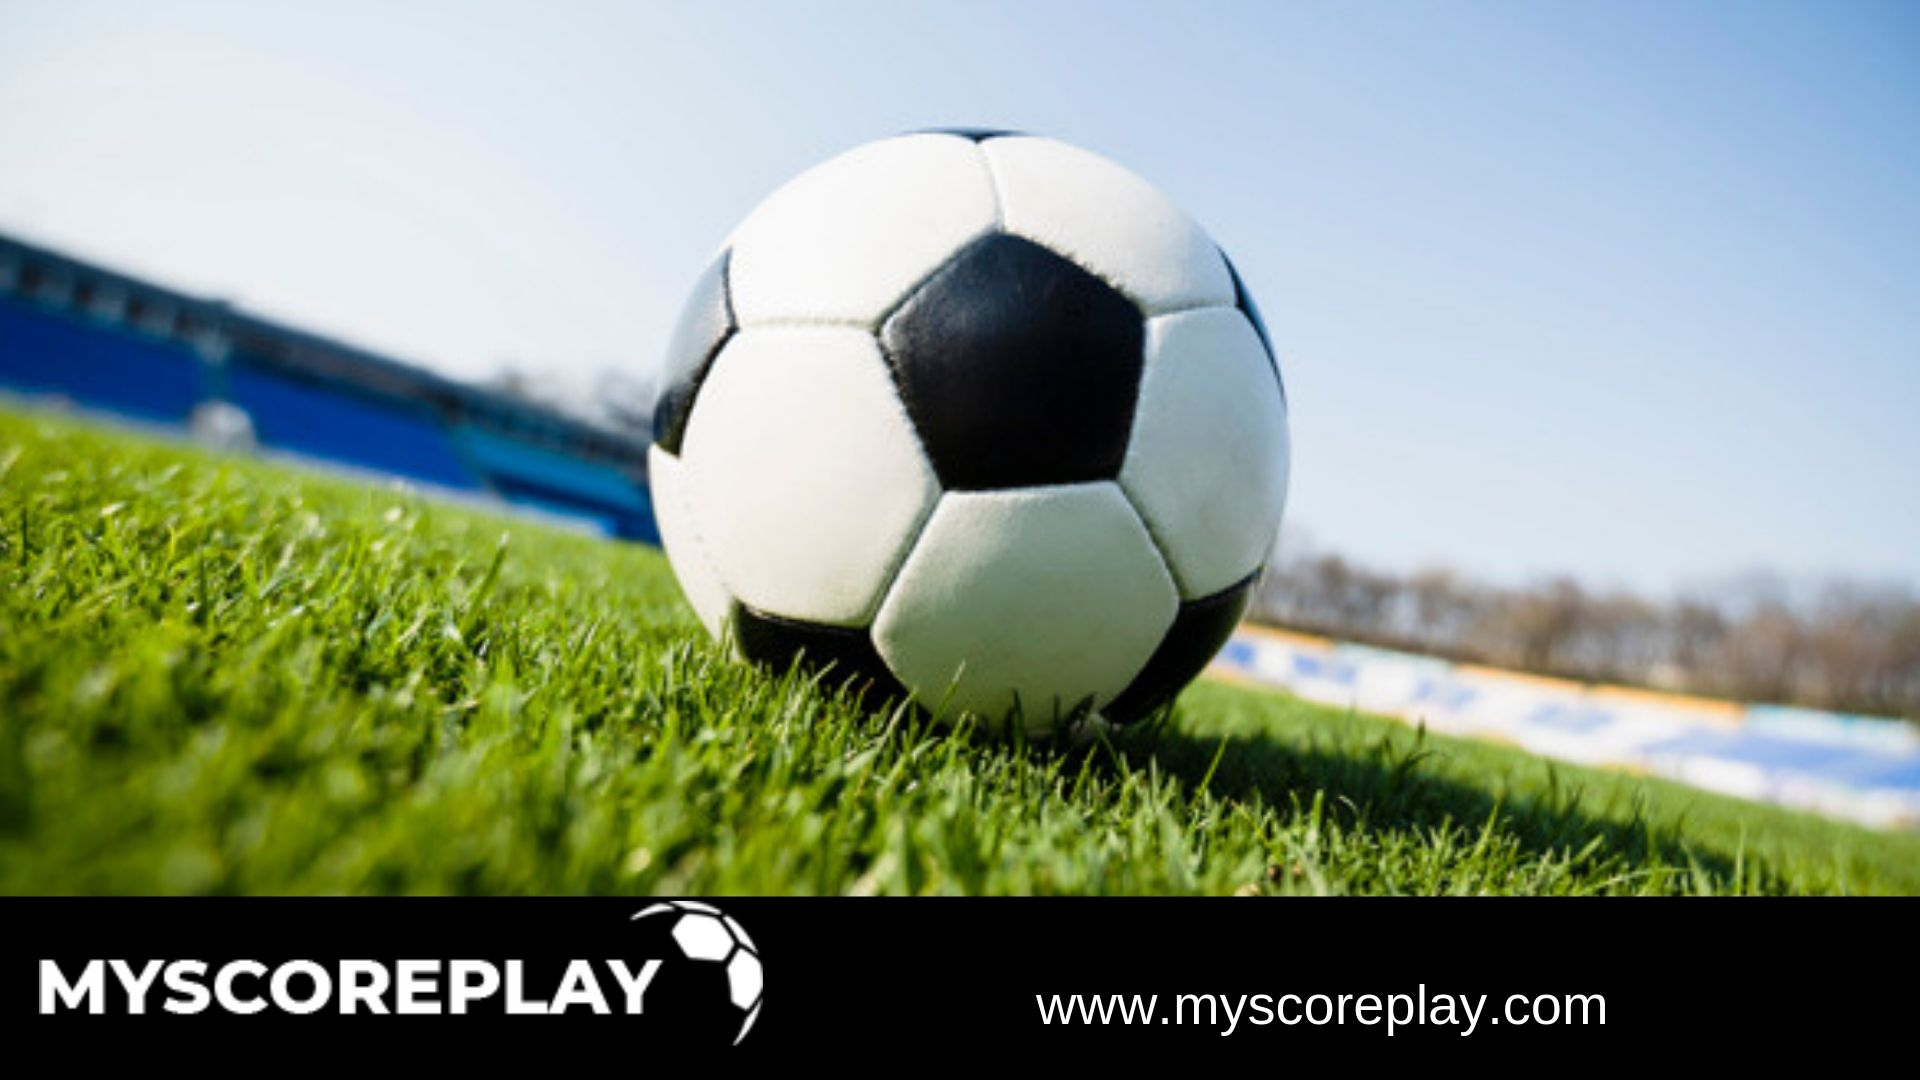 Welcome to Myscoreplay is best football prediction site in